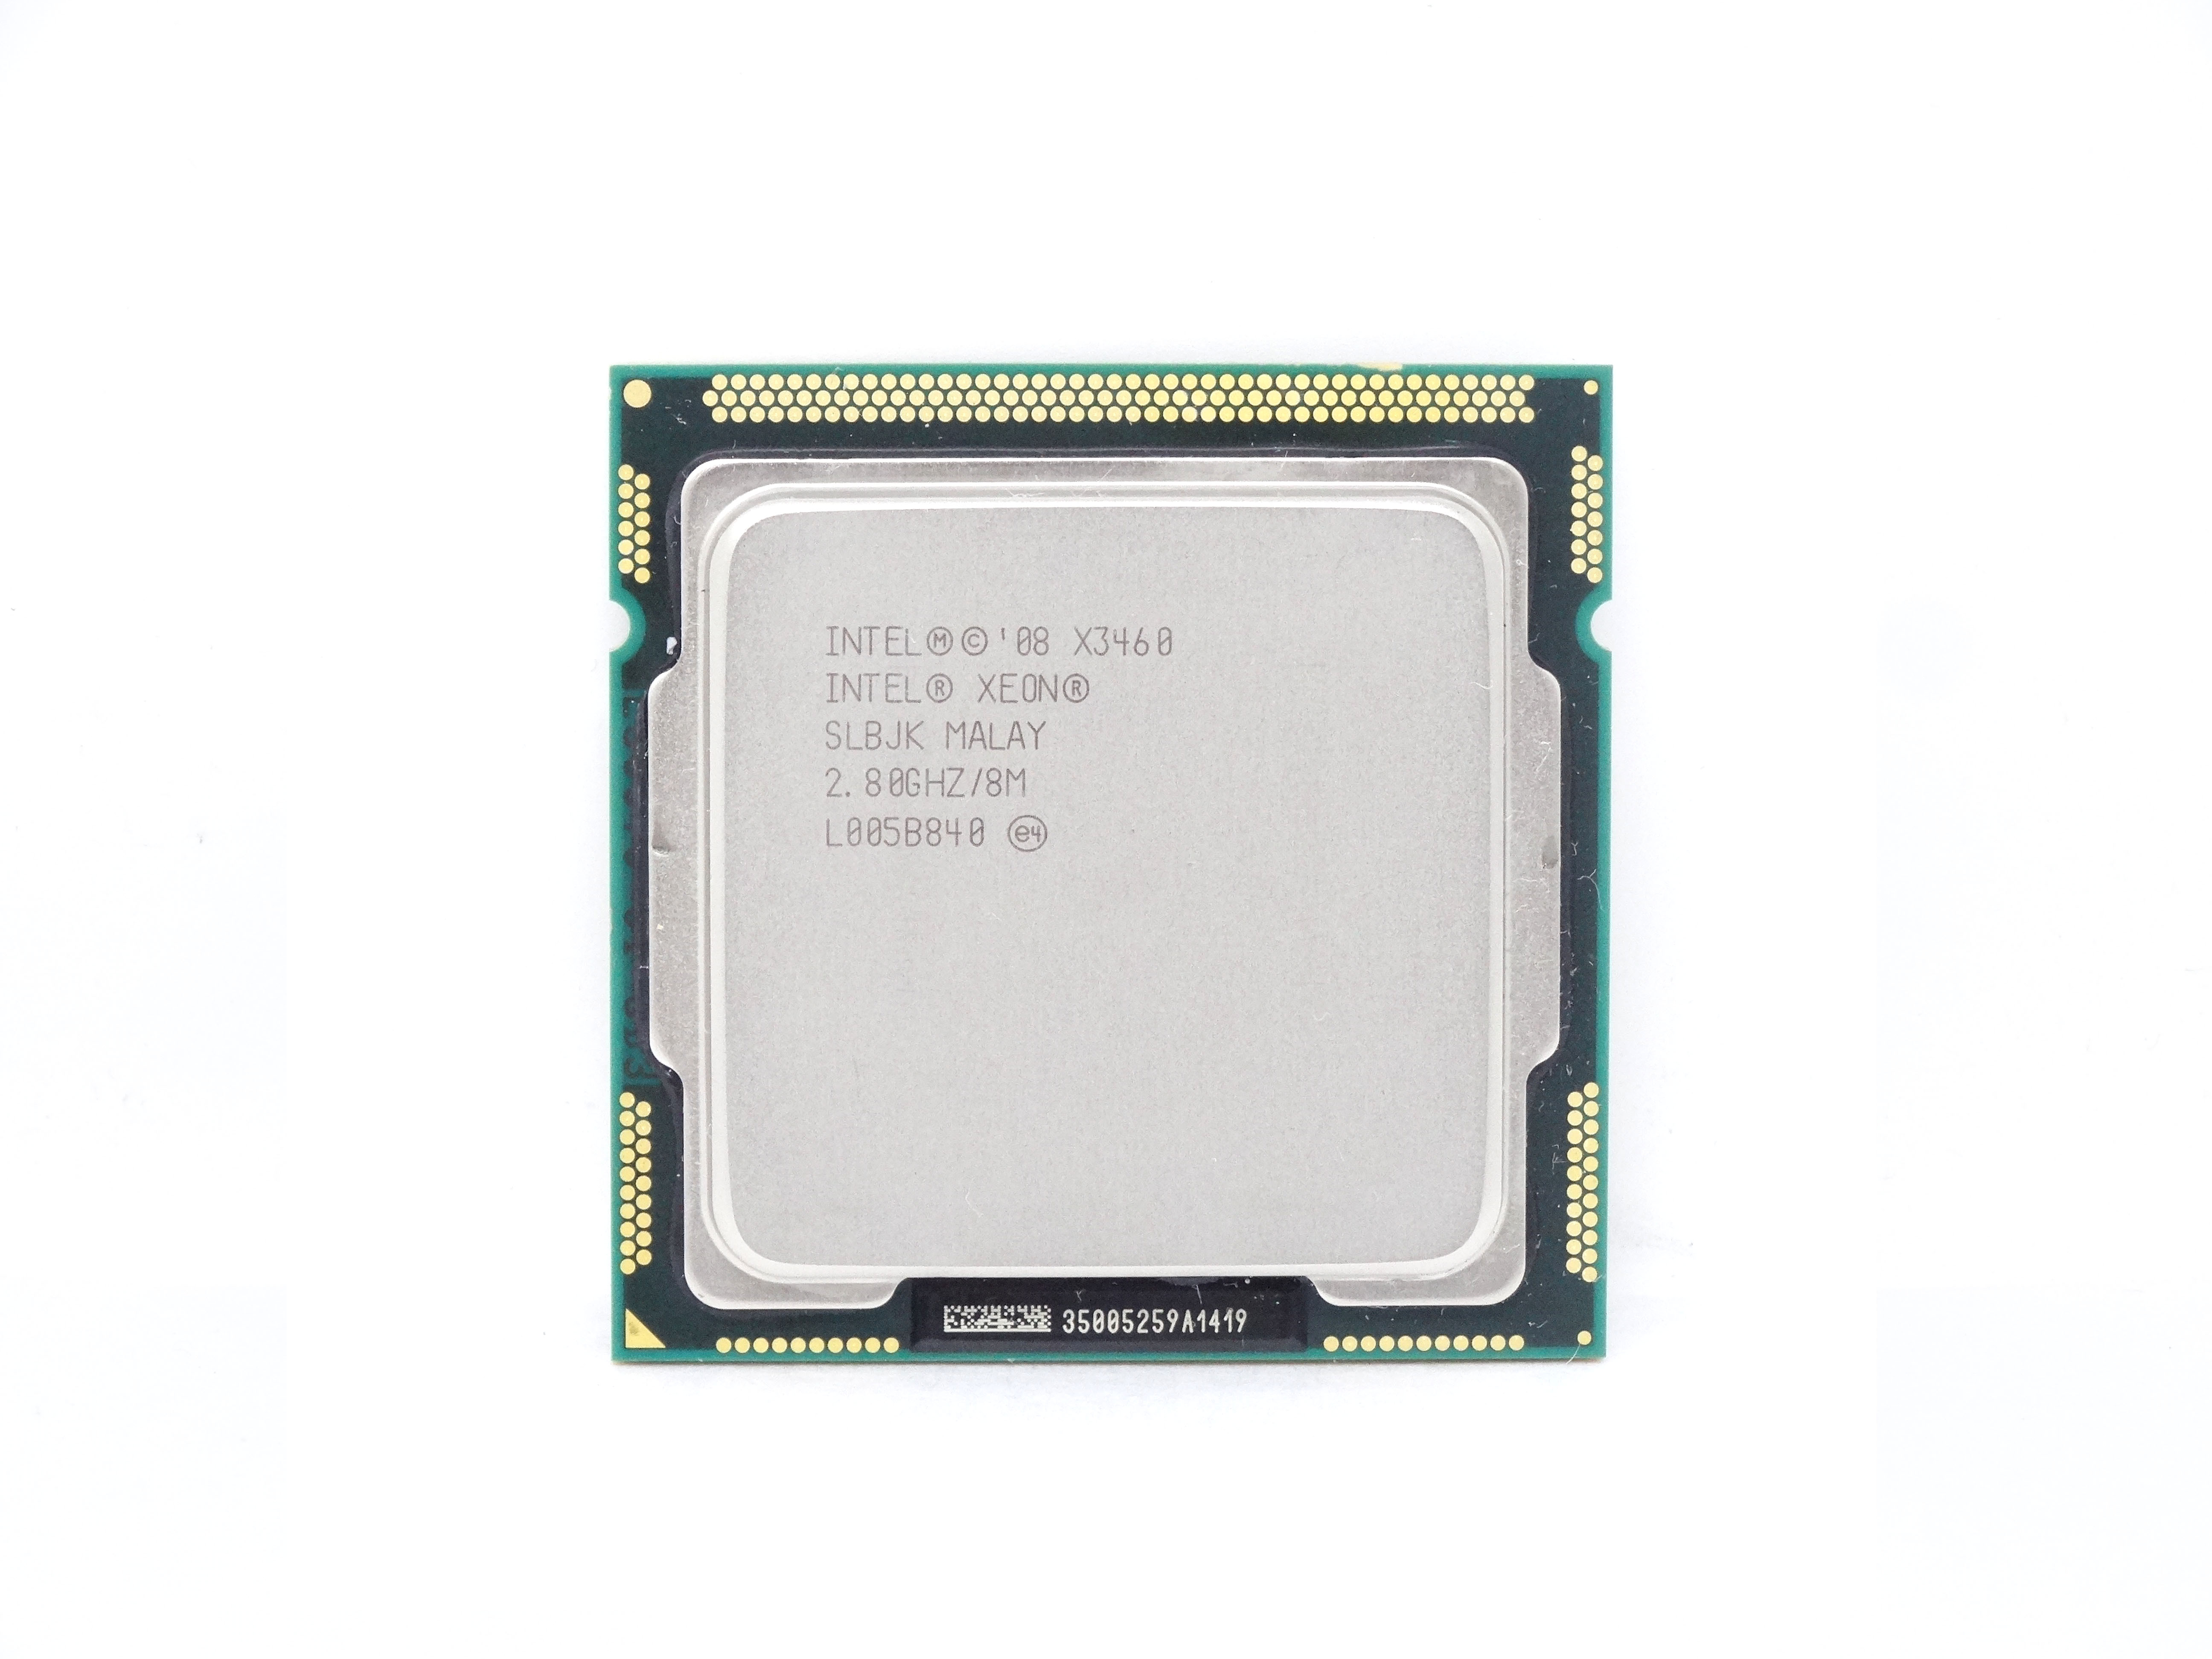 SLBJK Intel Xeon Quad Core X3460 2.80Ghz 2.5Gt/s 8MB L3 Cache Socket LGA 1156 Processor (SLBJK)